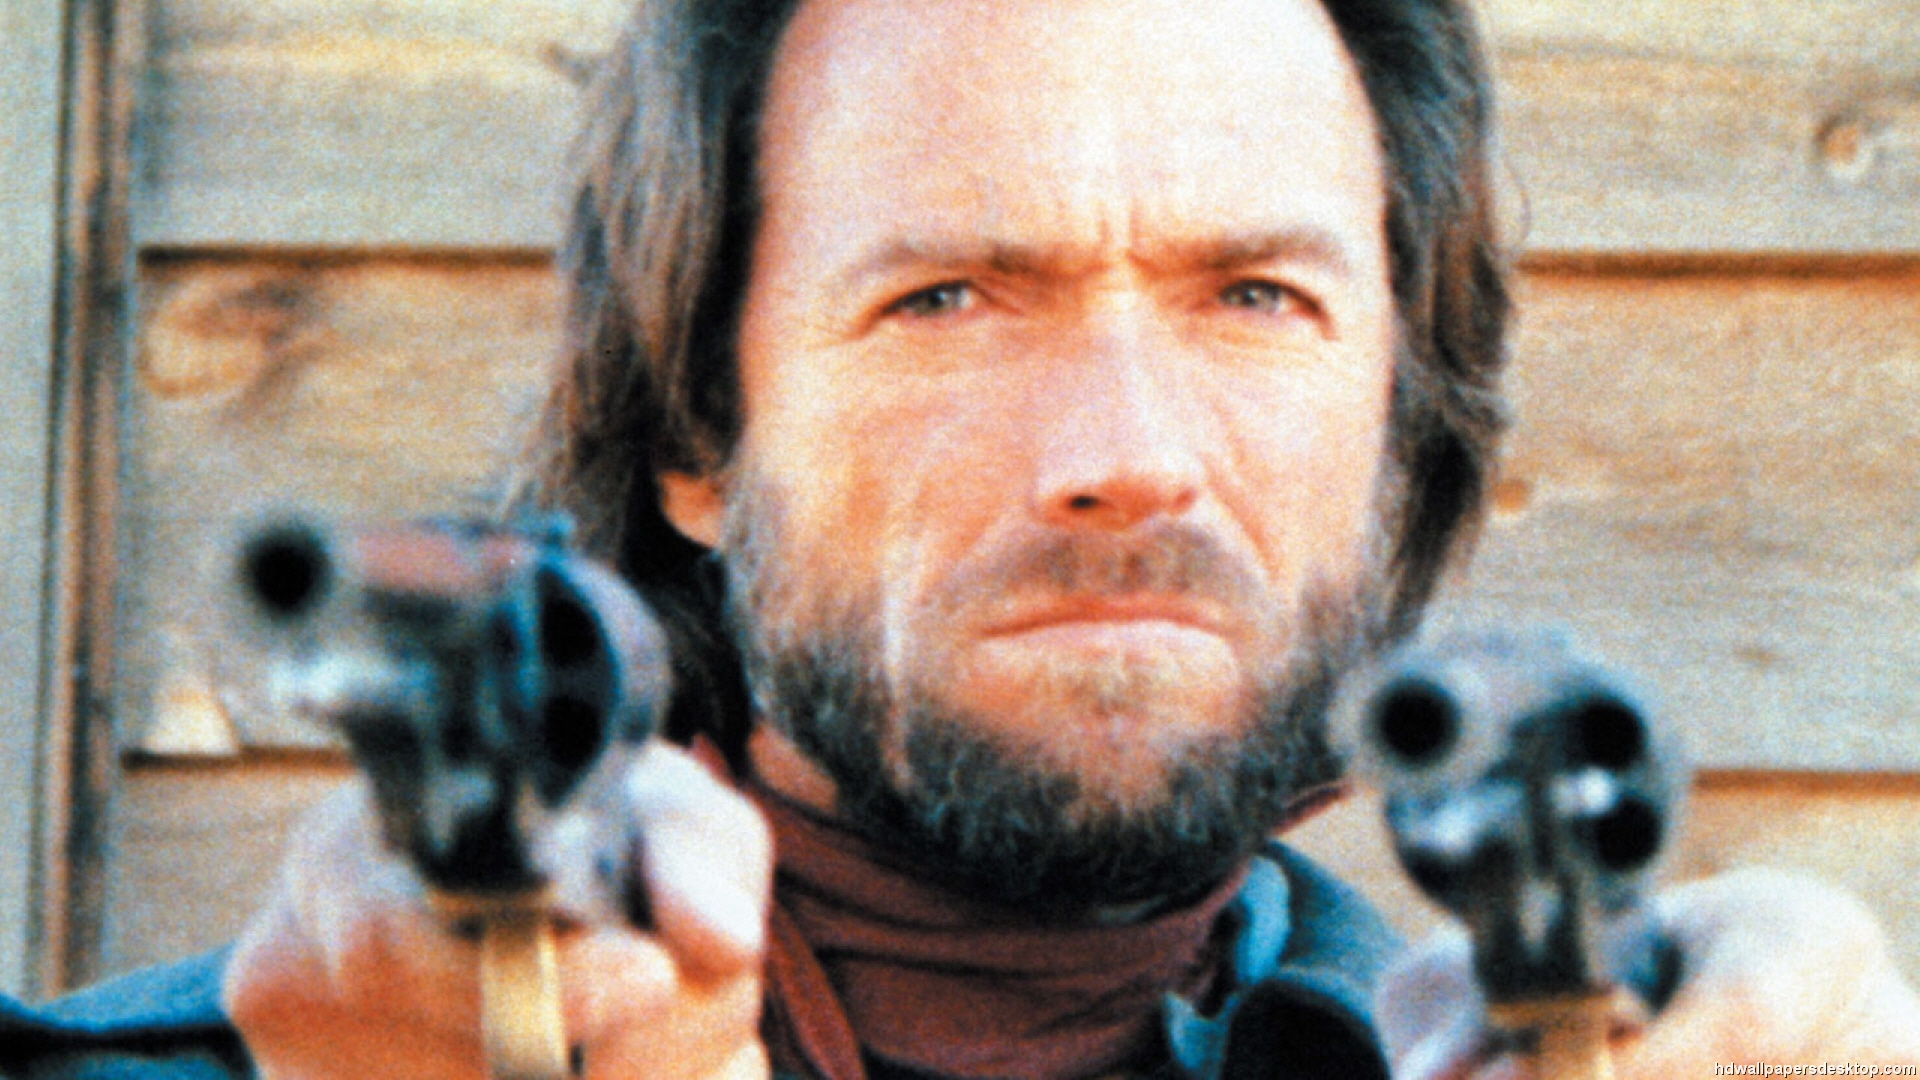 17 Clint Eastwood Wallpapers 1920x1080 33jpg 1920x1080